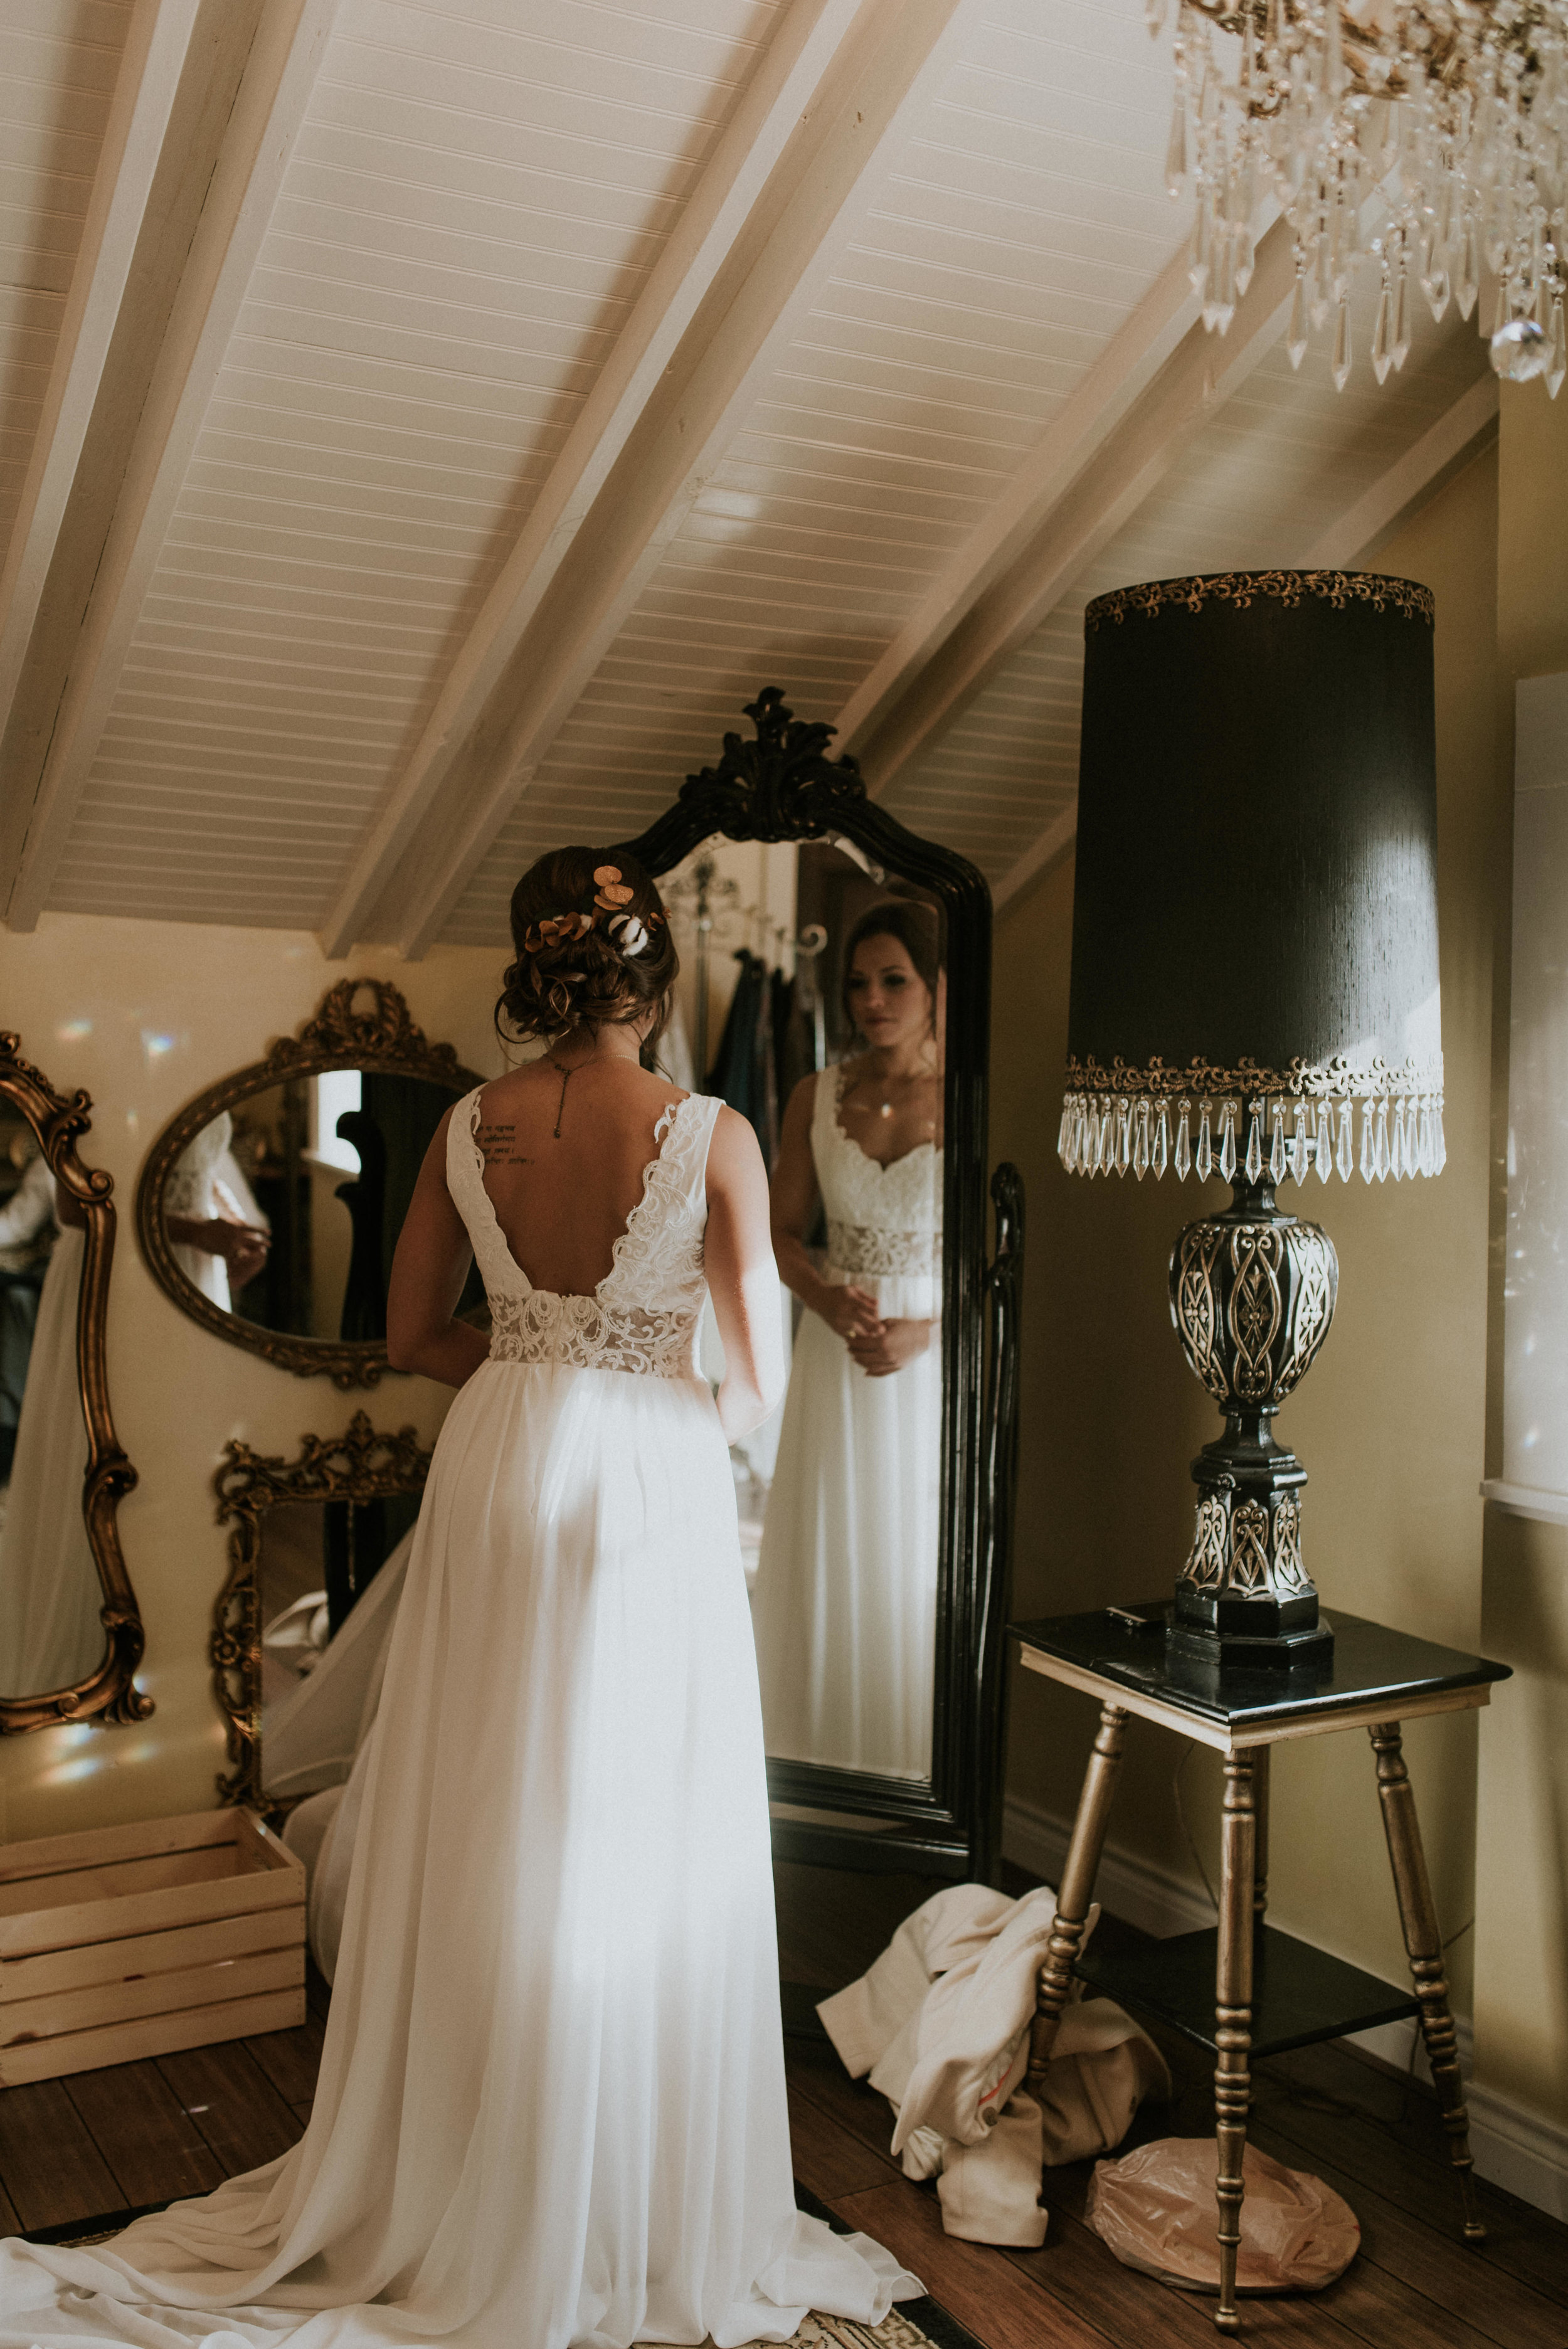 Boho wedding at Lionsgate Event Center in the Chandelier Barn